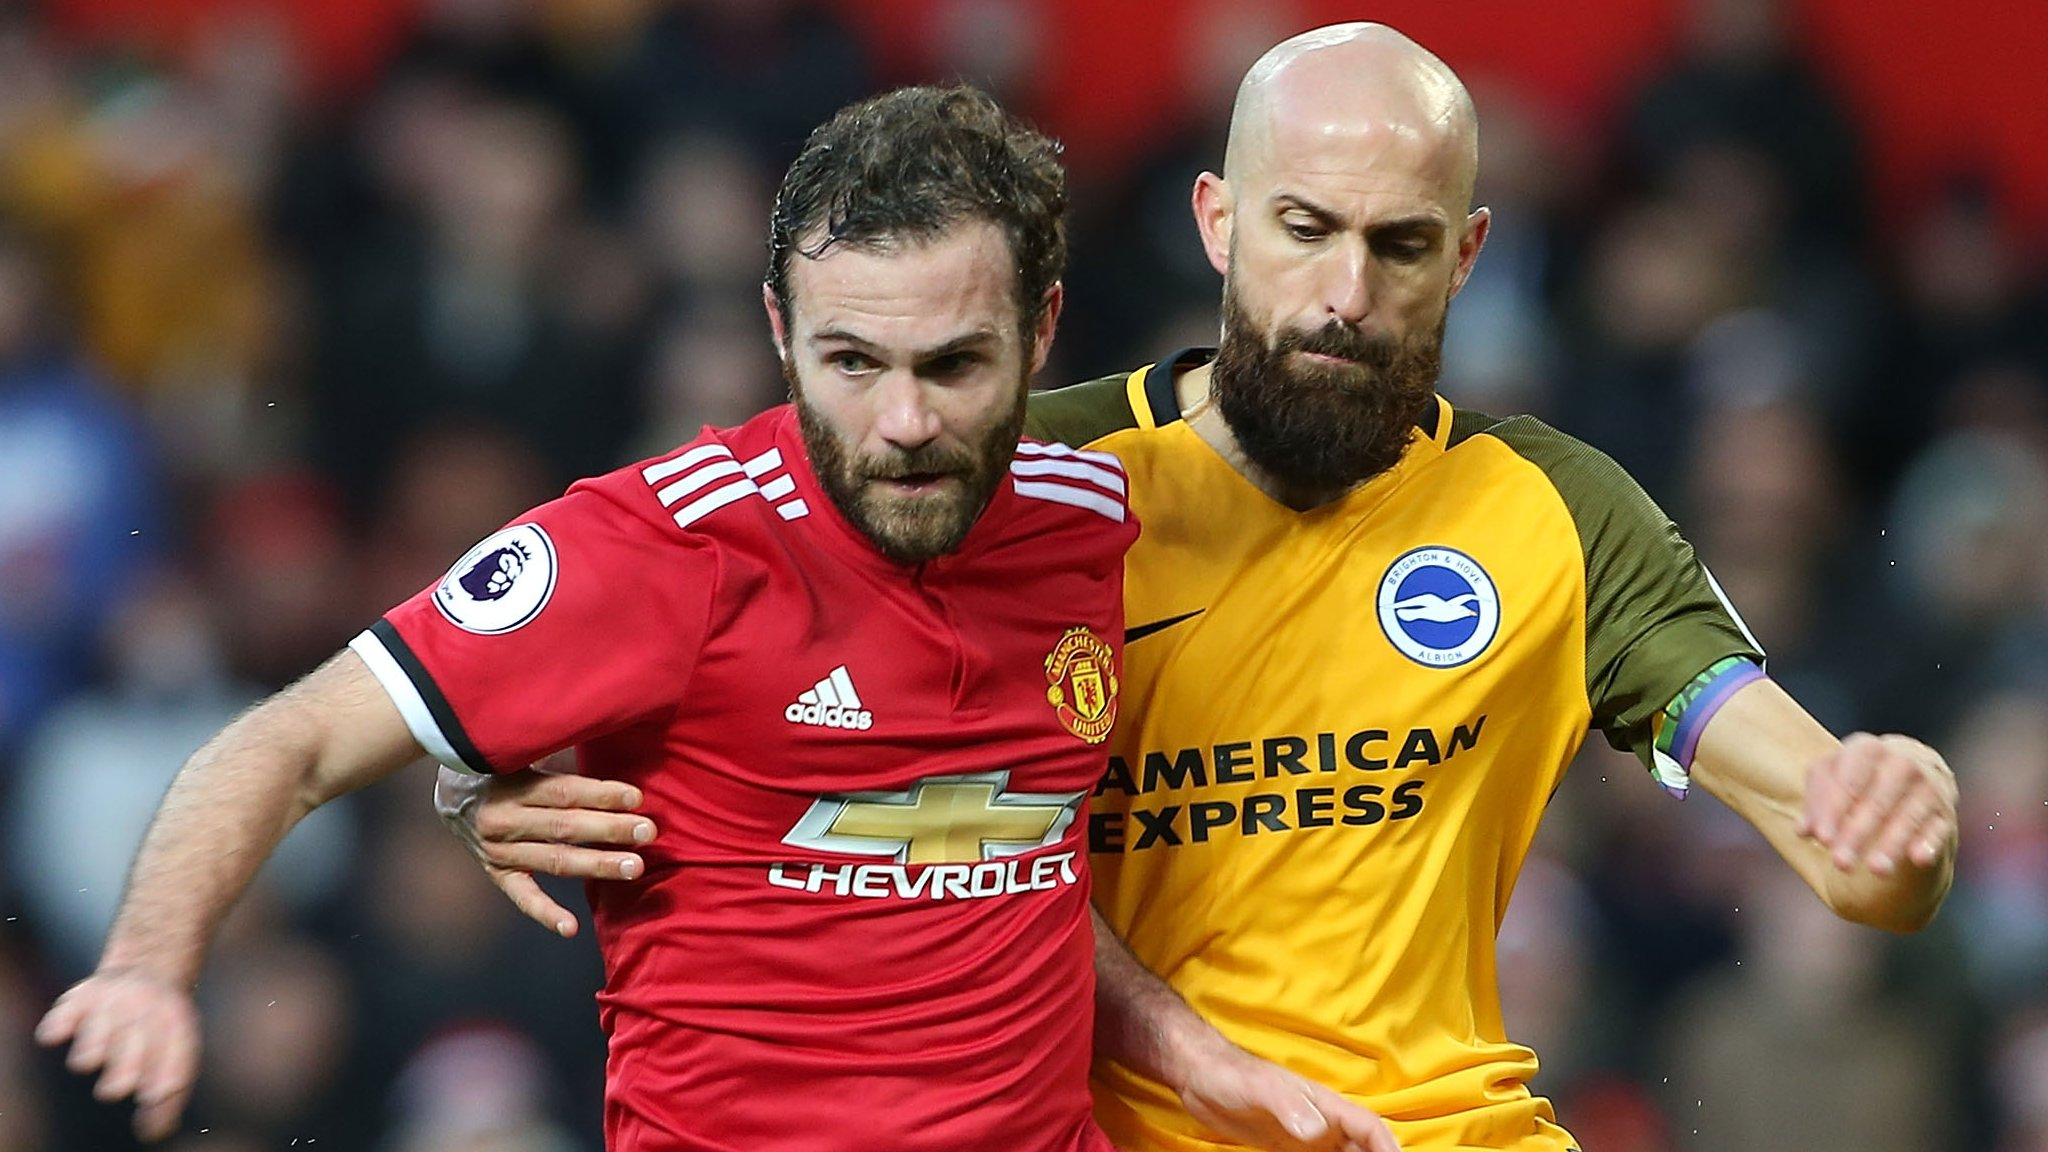 Man Utd to face Brighton in FA Cup quarter-finals